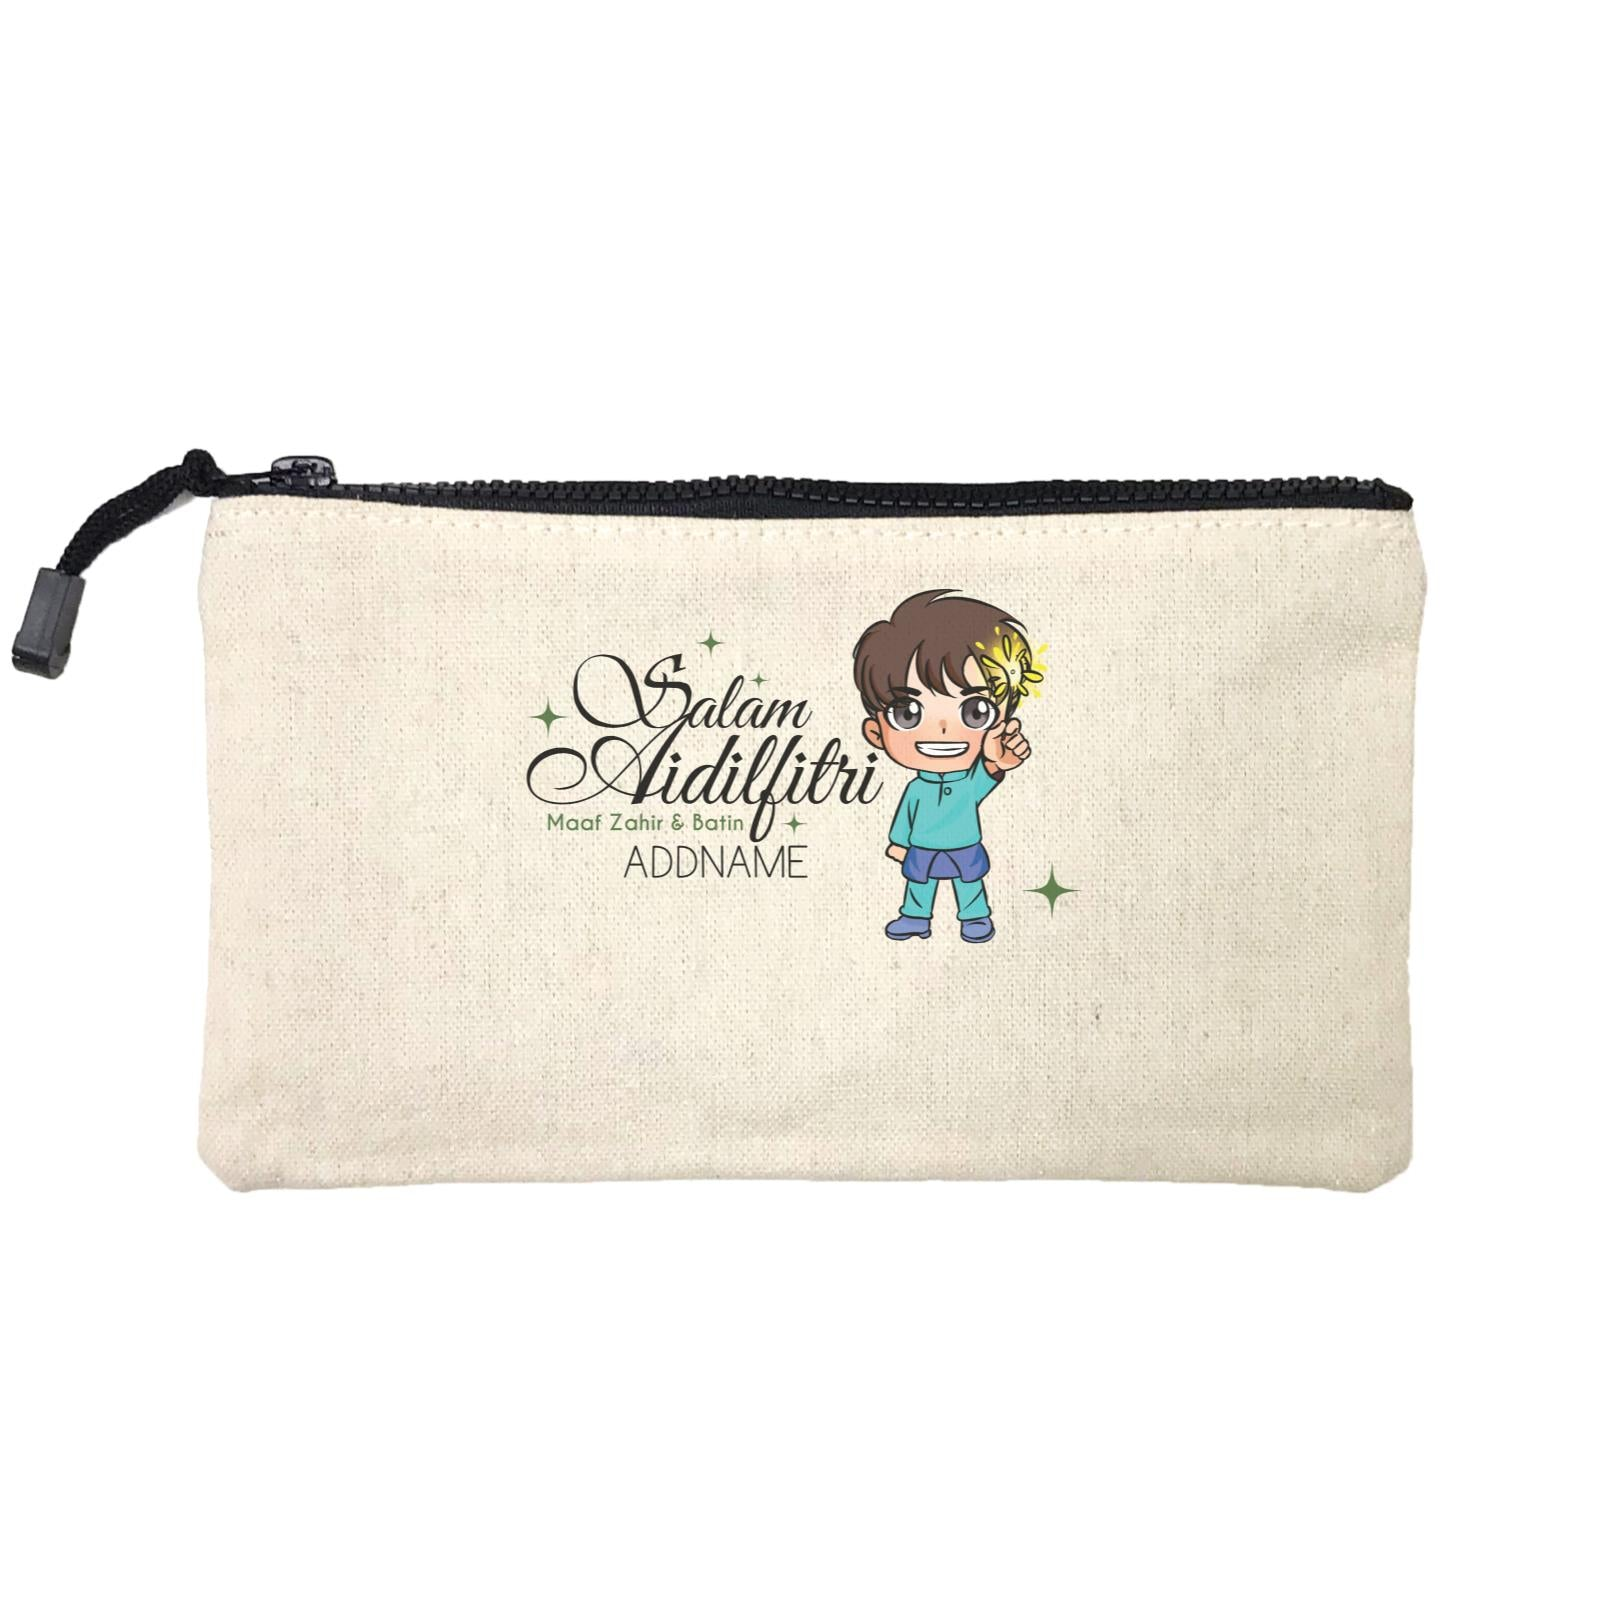 Raya Chibi Wishes Little Boy Addname Wishes Everyone Salam Aidilfitri Maaf Zahir & Batin Mini Accessories Stationery Pouch